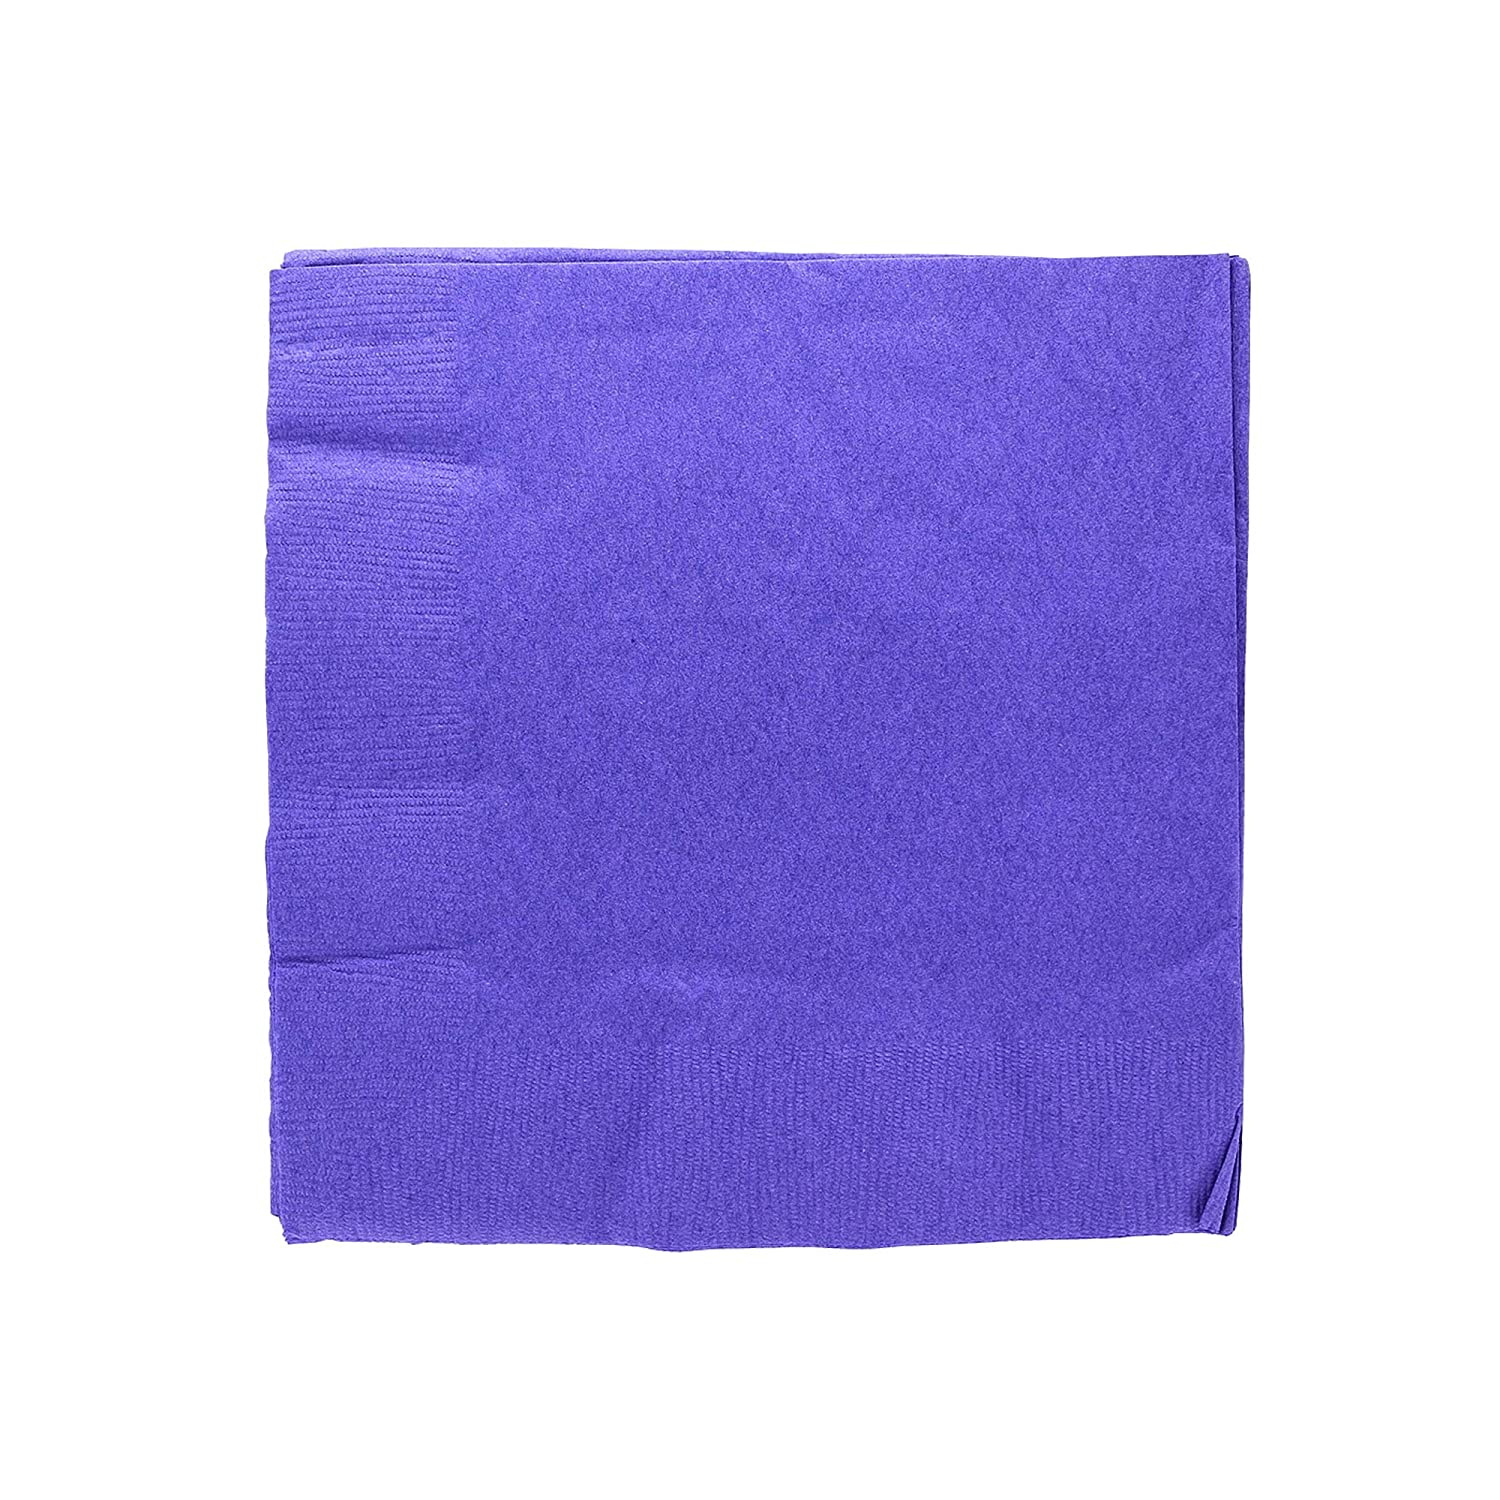 "Birthday Dinner Amcrate Big Party Pack 125 Count Caribbean Blue Beverage Napkins Ideal for Wedding 5/"" x 5/"" Cocktails. Lunch Party"